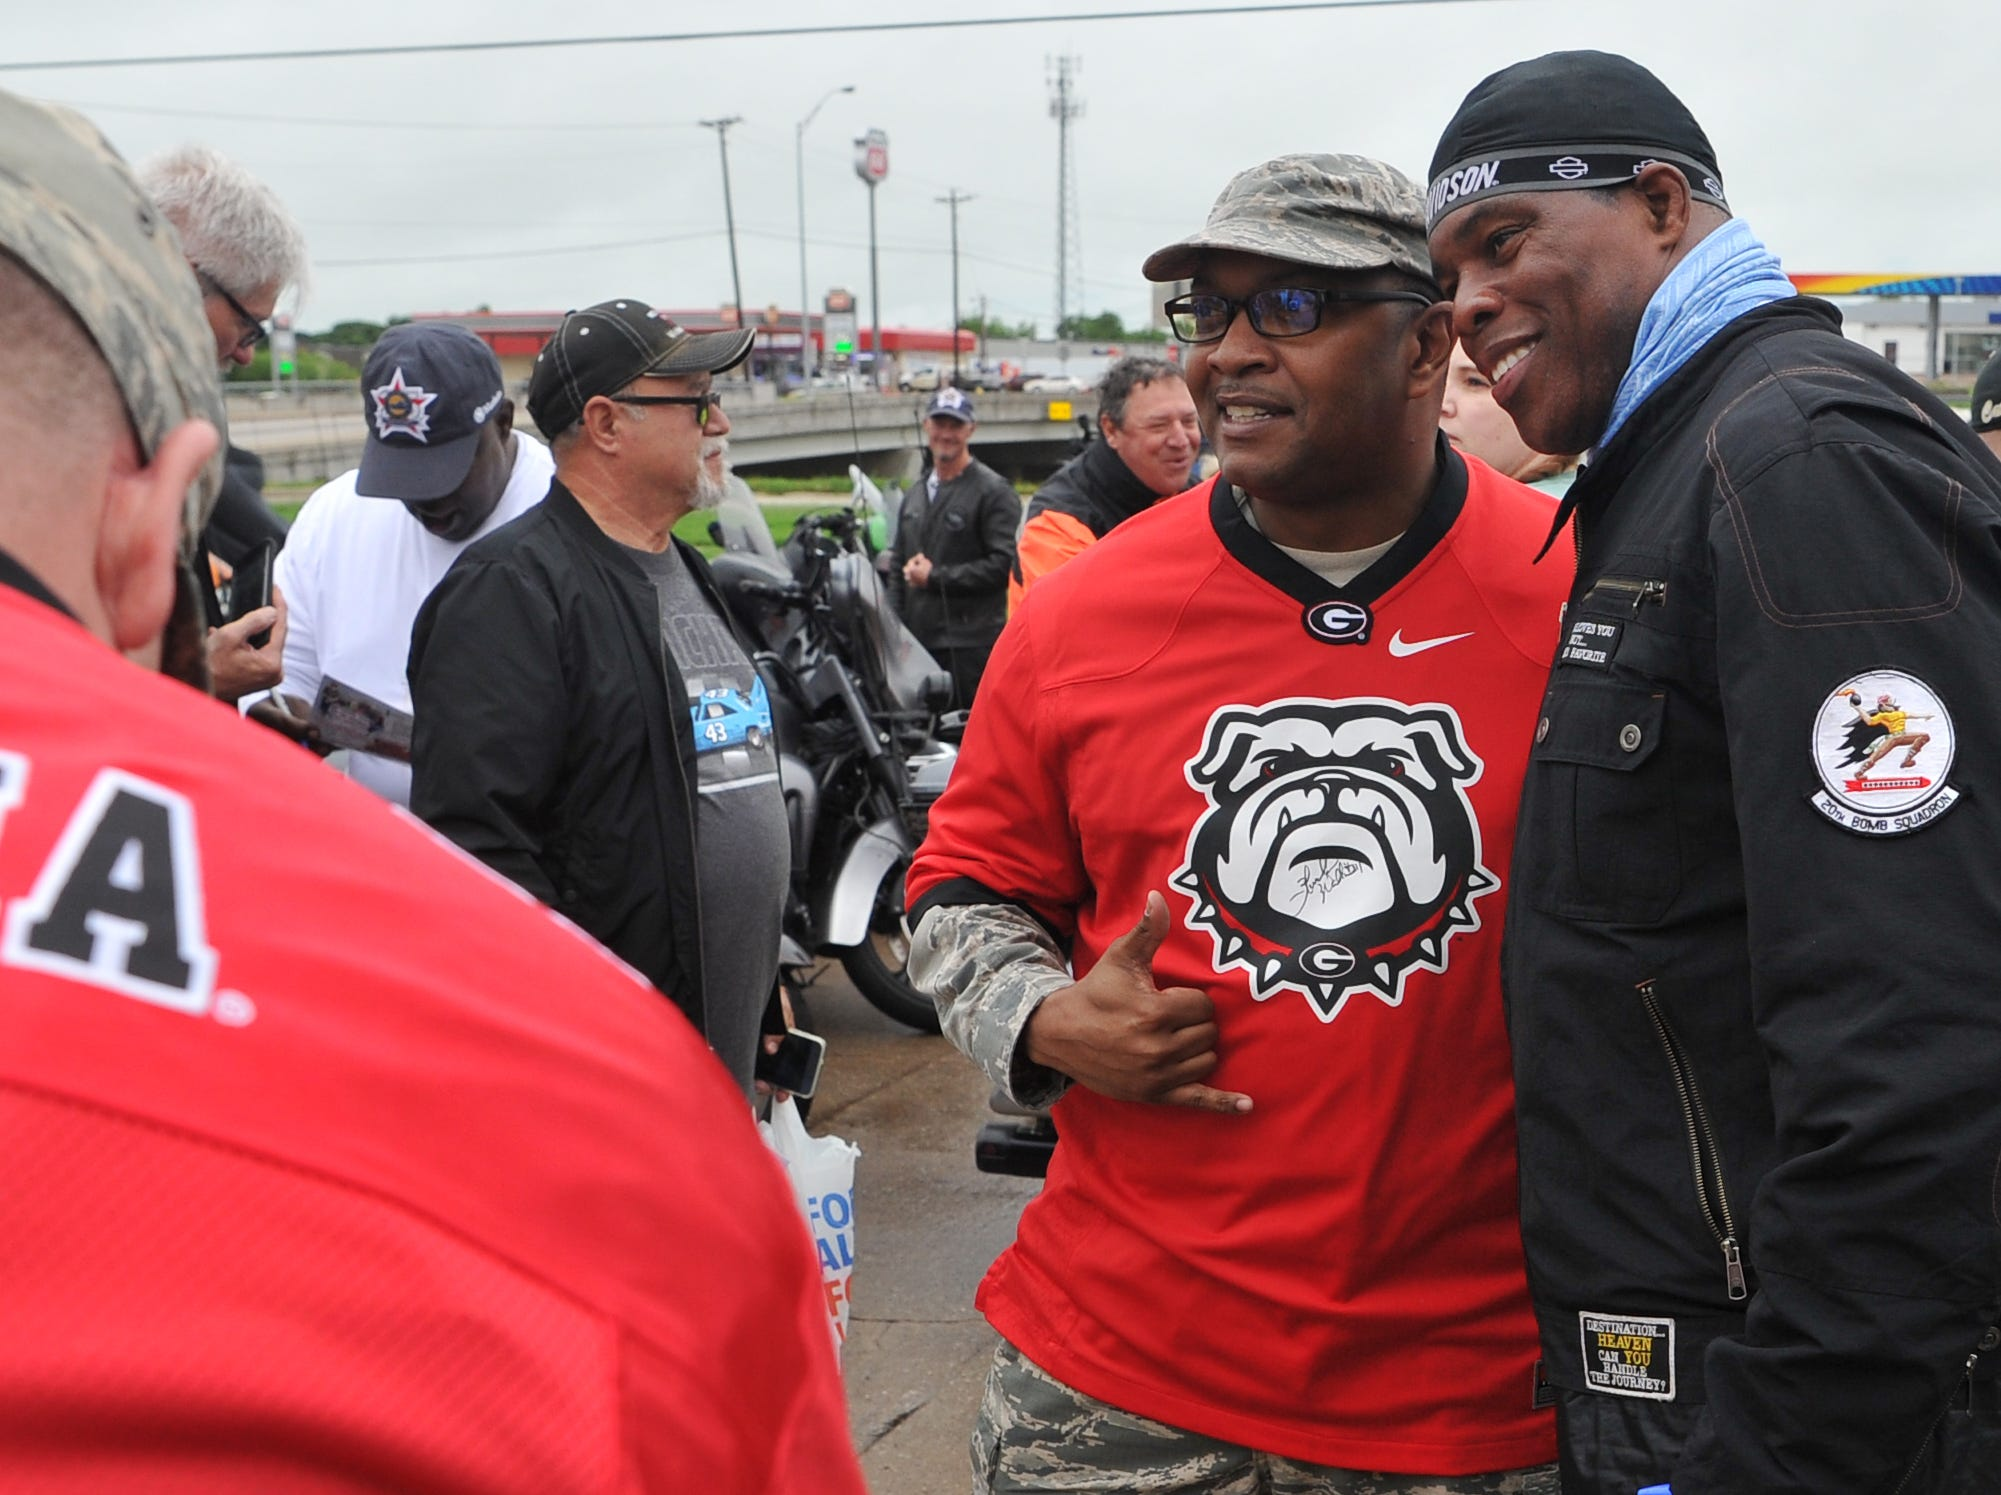 Former American football player Herschel Walker signed autographs and posed for pictures, Wednesday morning during the Kyle Petty Charity Ride's fuel stop at the Loves Truck Stop.